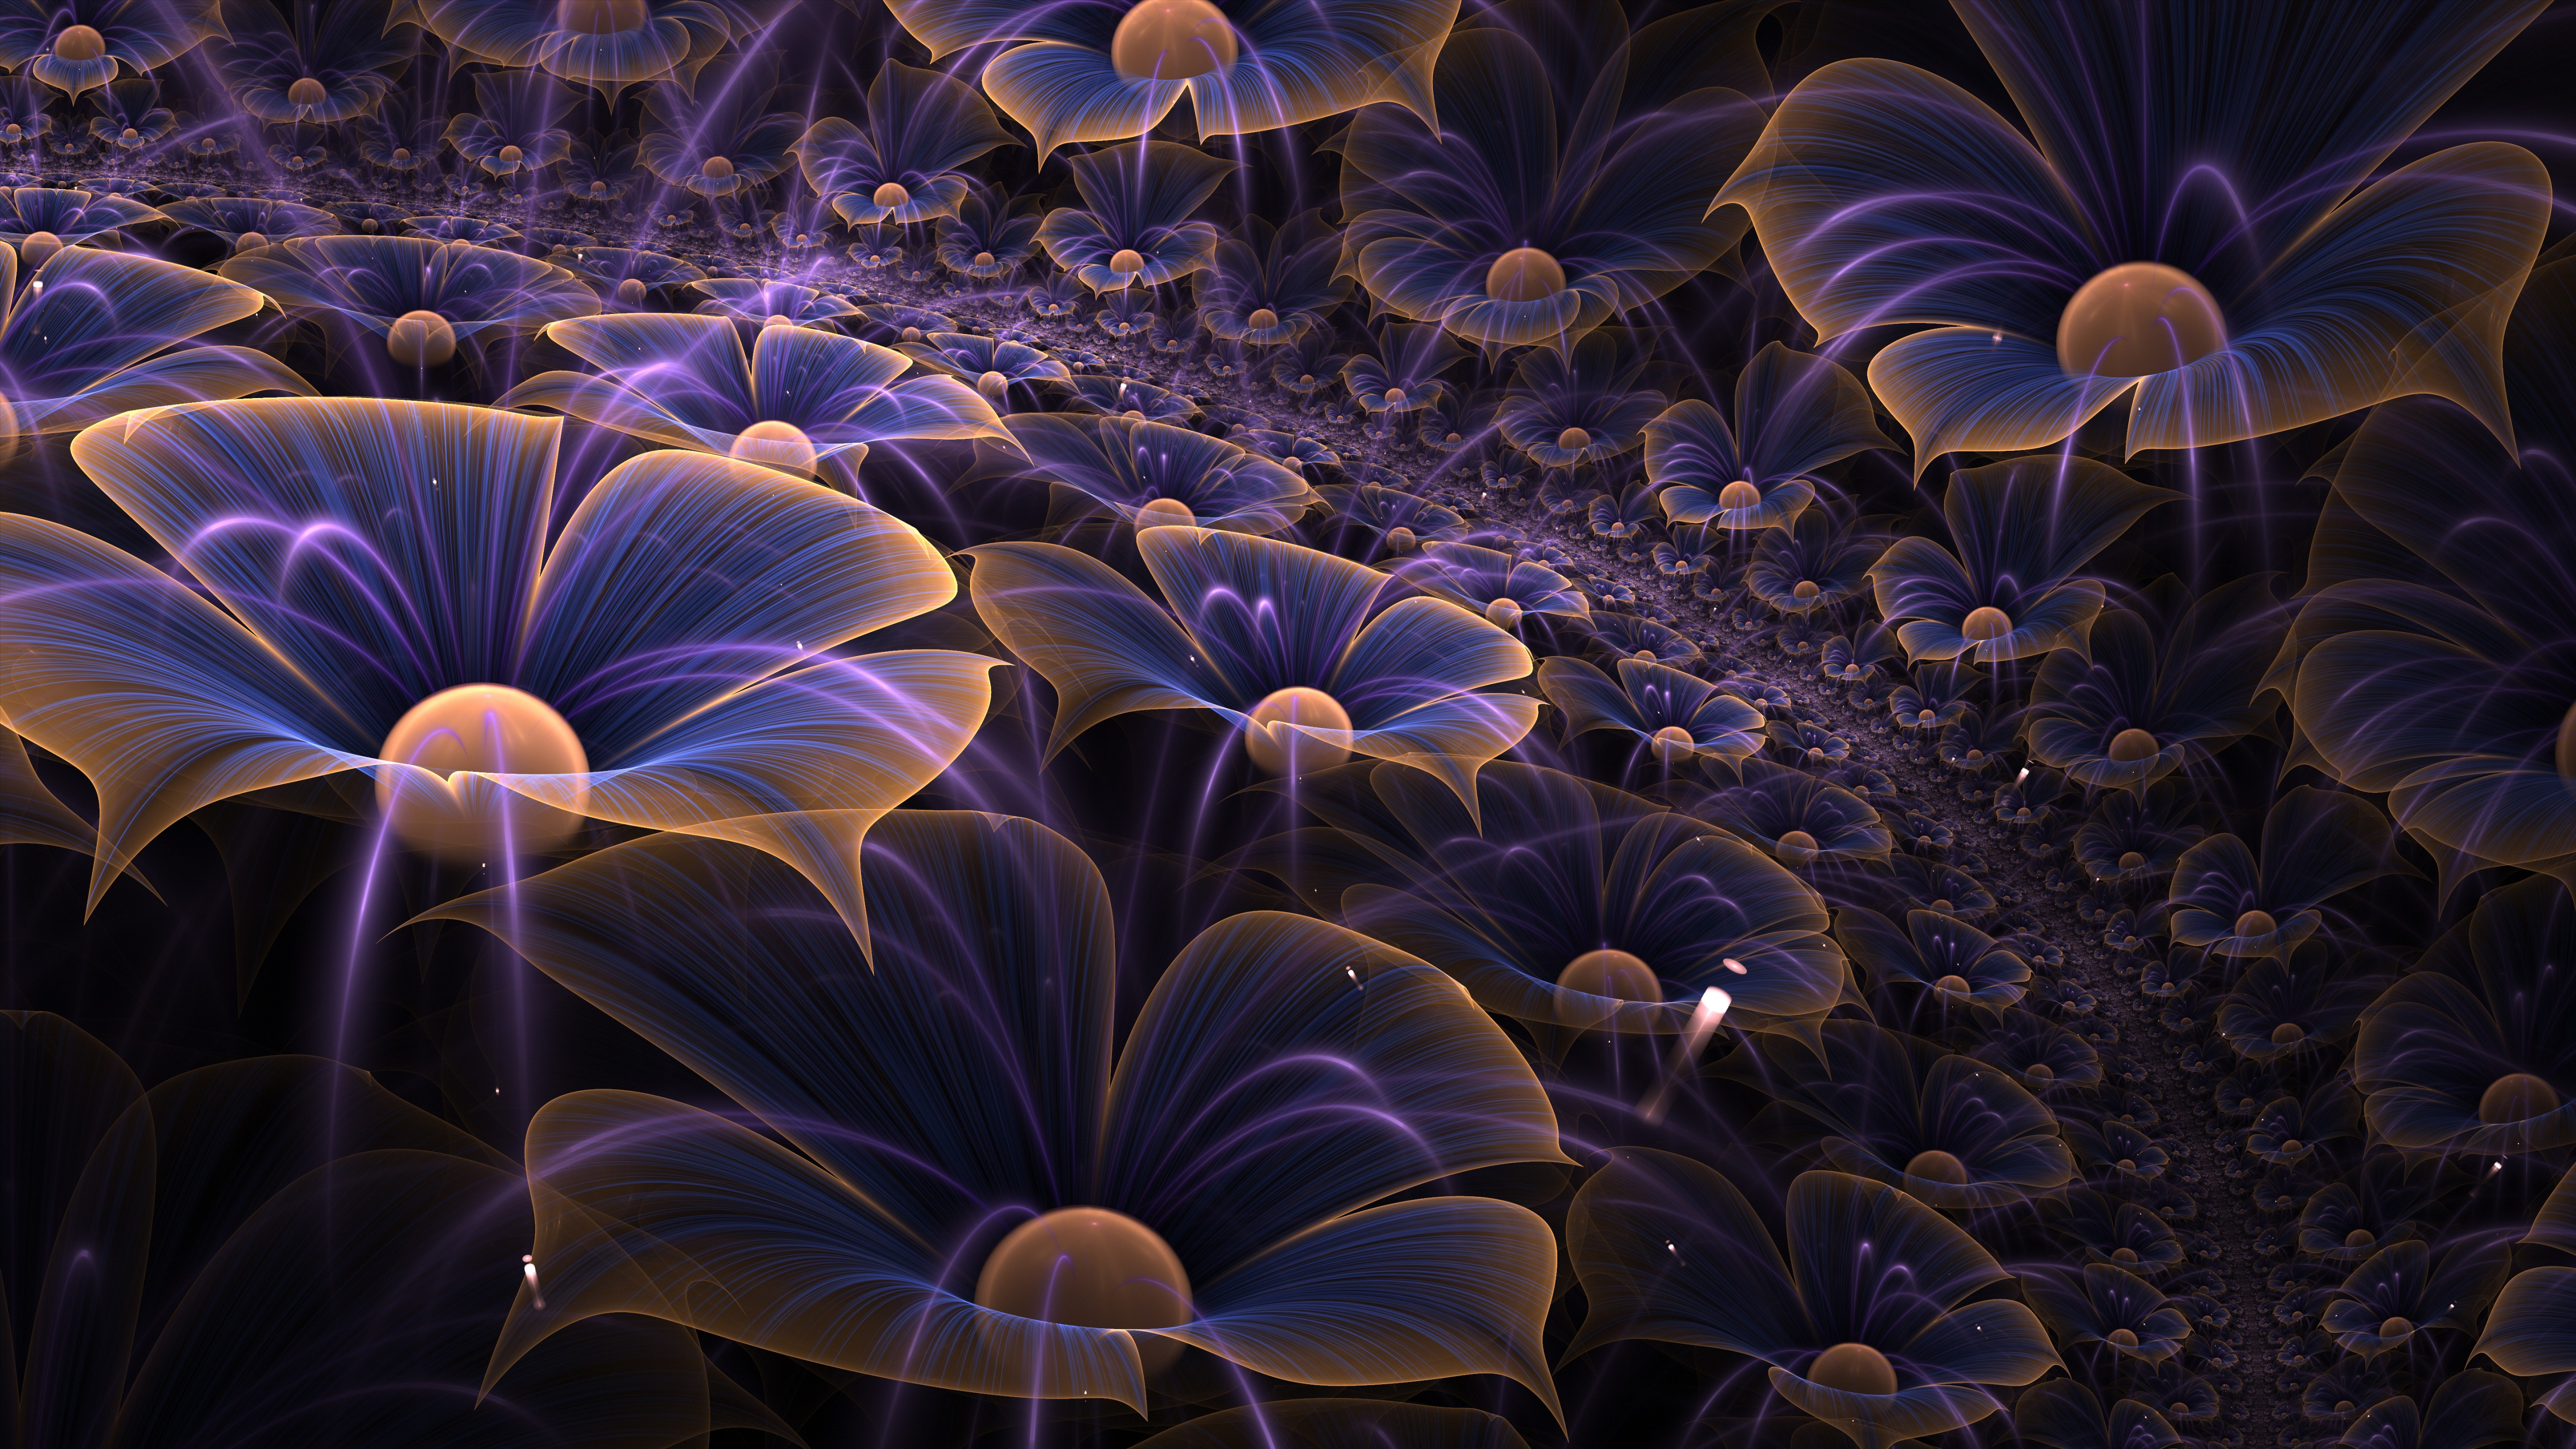 wallpaper macro digital art flowers art 11101